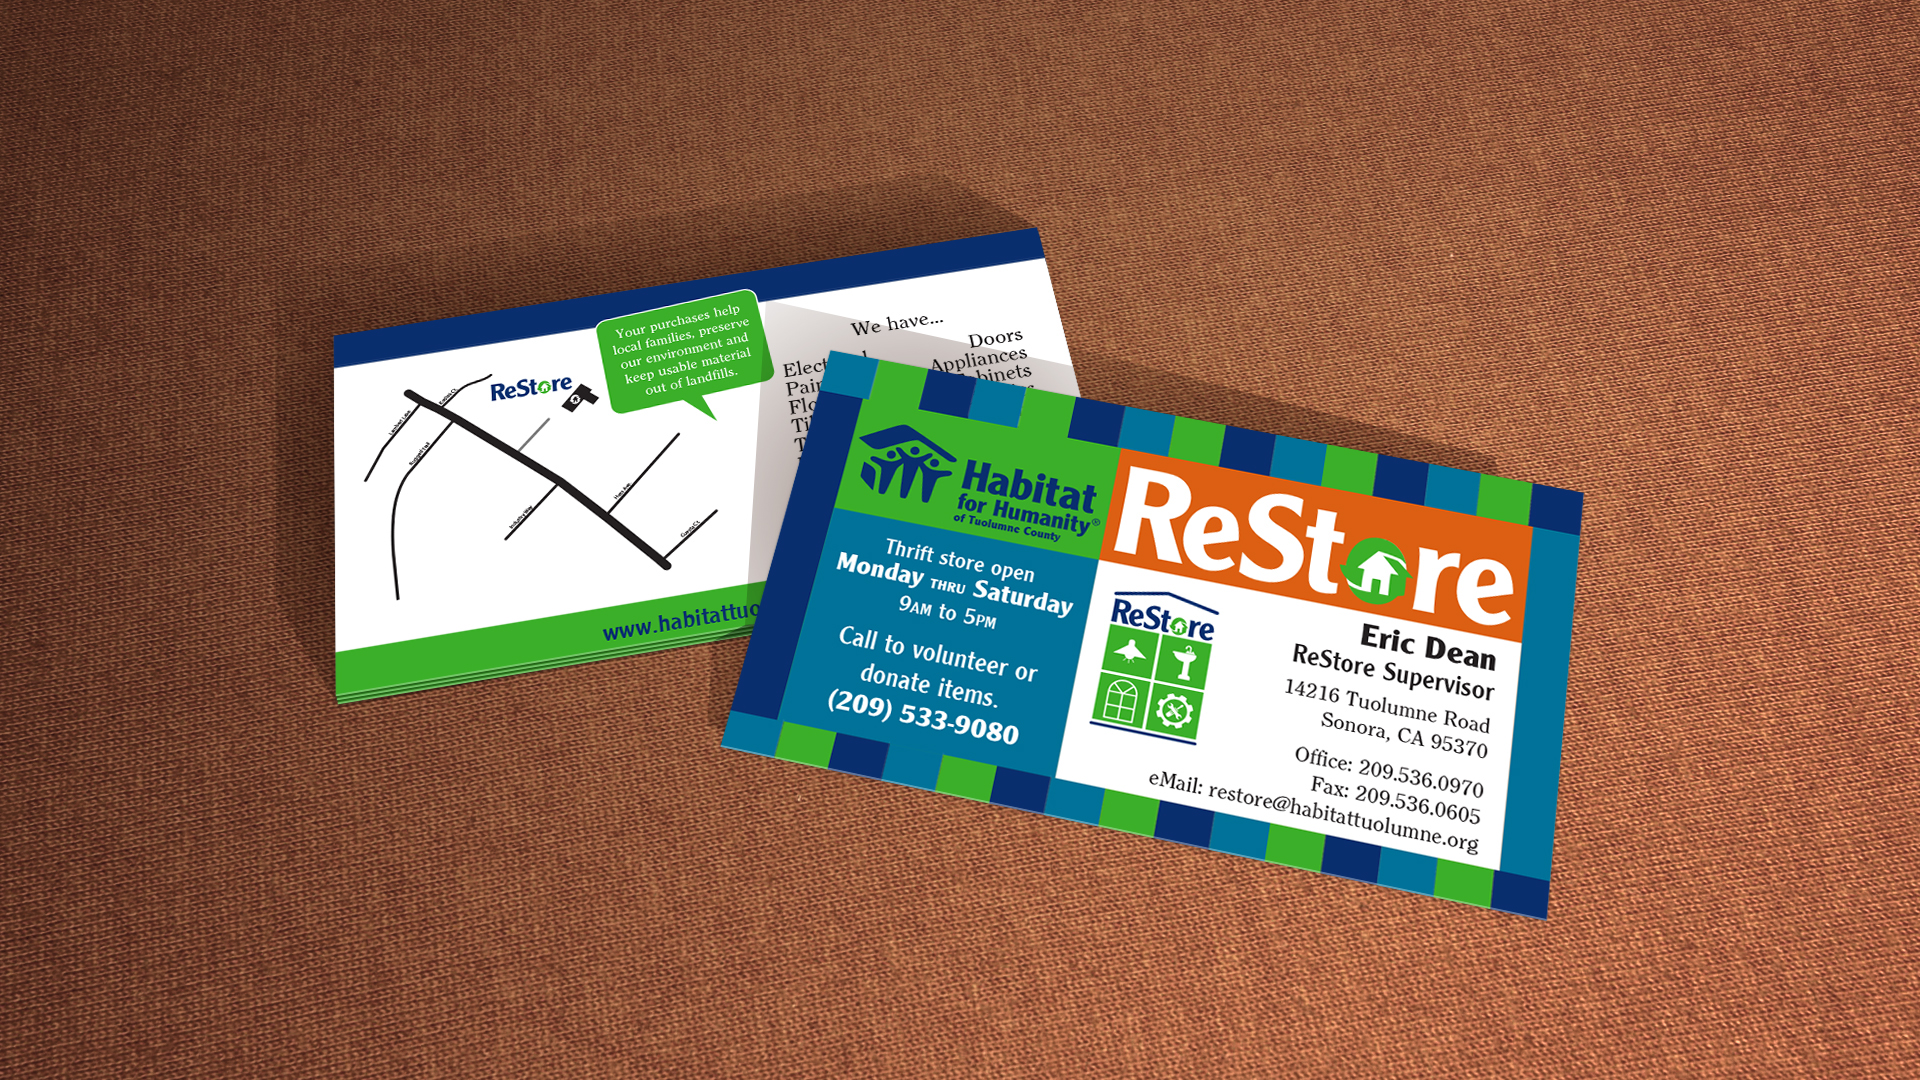 Kenneth yaecker habitat business cards business card design for hfh and restore thrift stores reheart Image collections